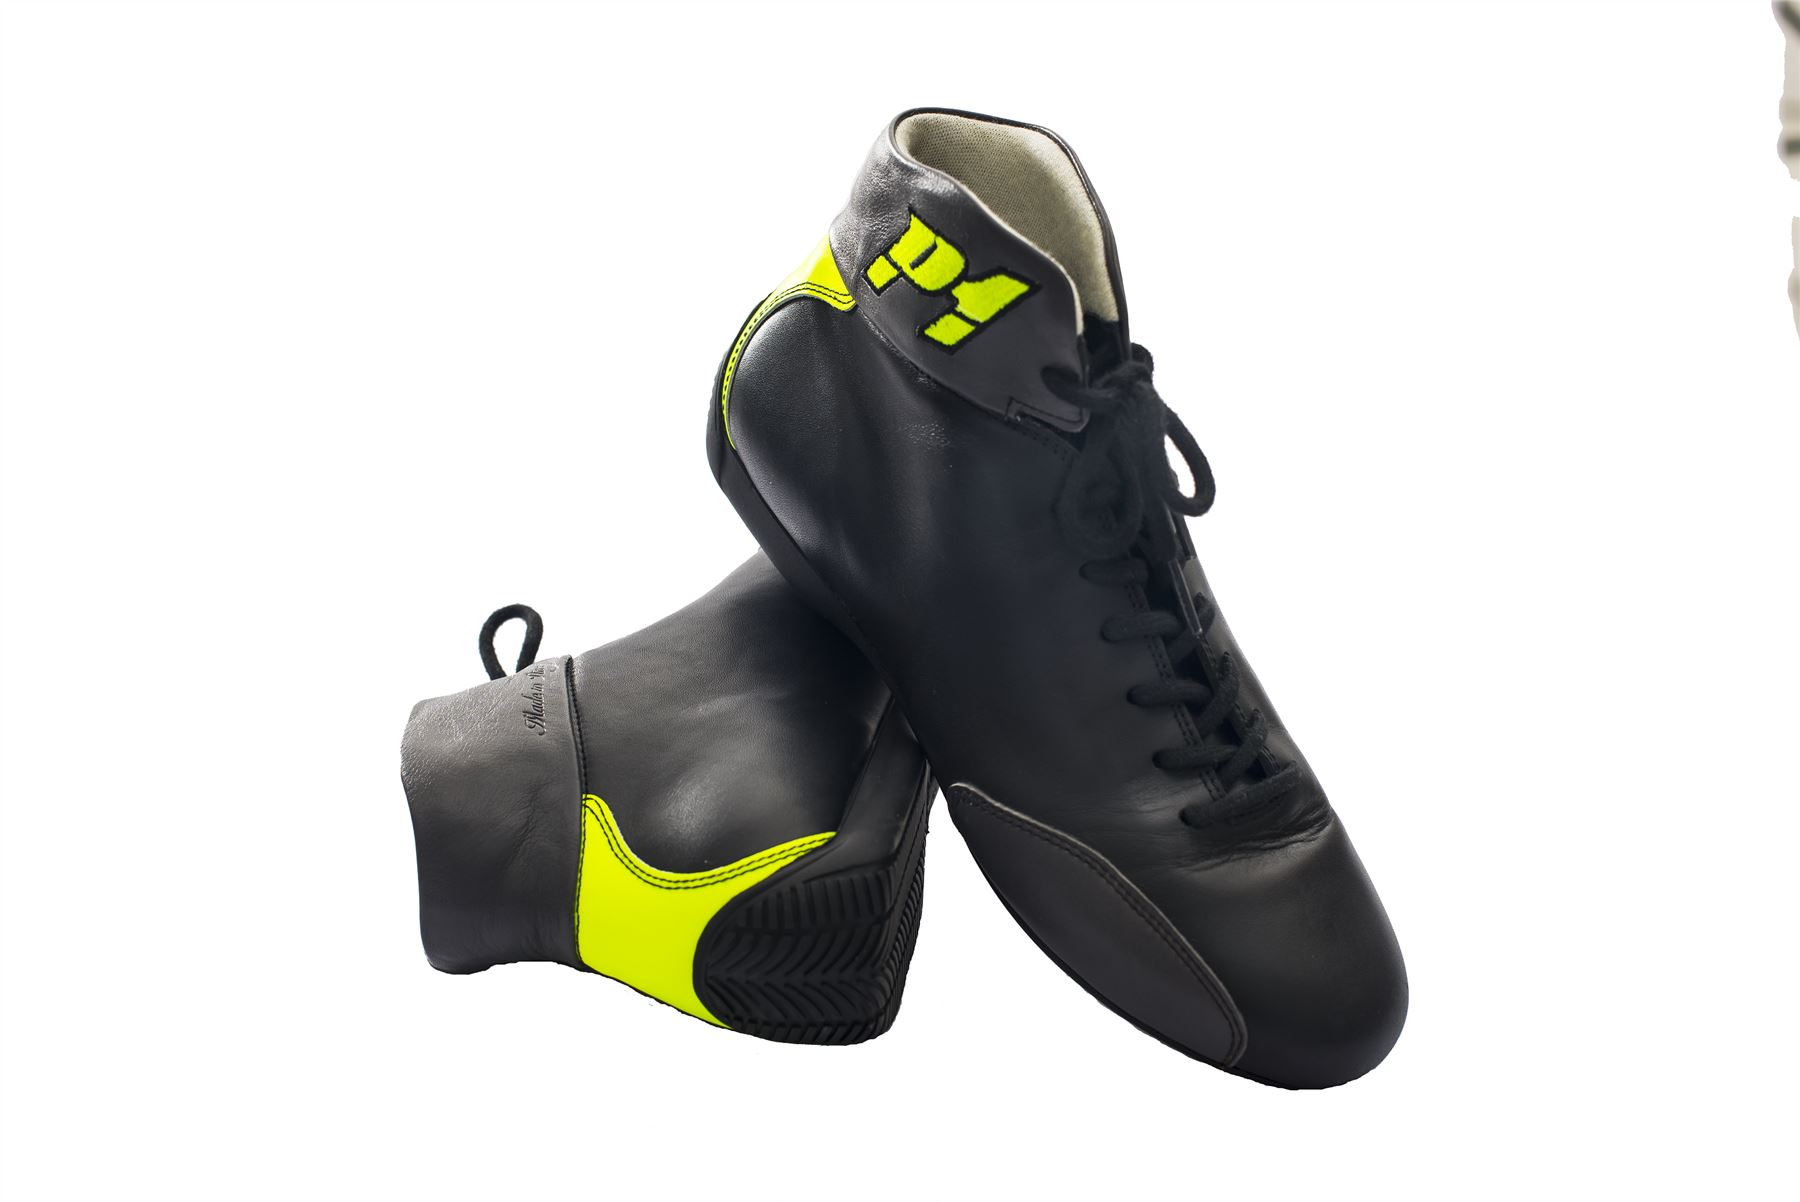 Indexbild 12 - P1 Racewear Monza FIA Approved Soft Leather Race, Rally Boots Black/Fluro